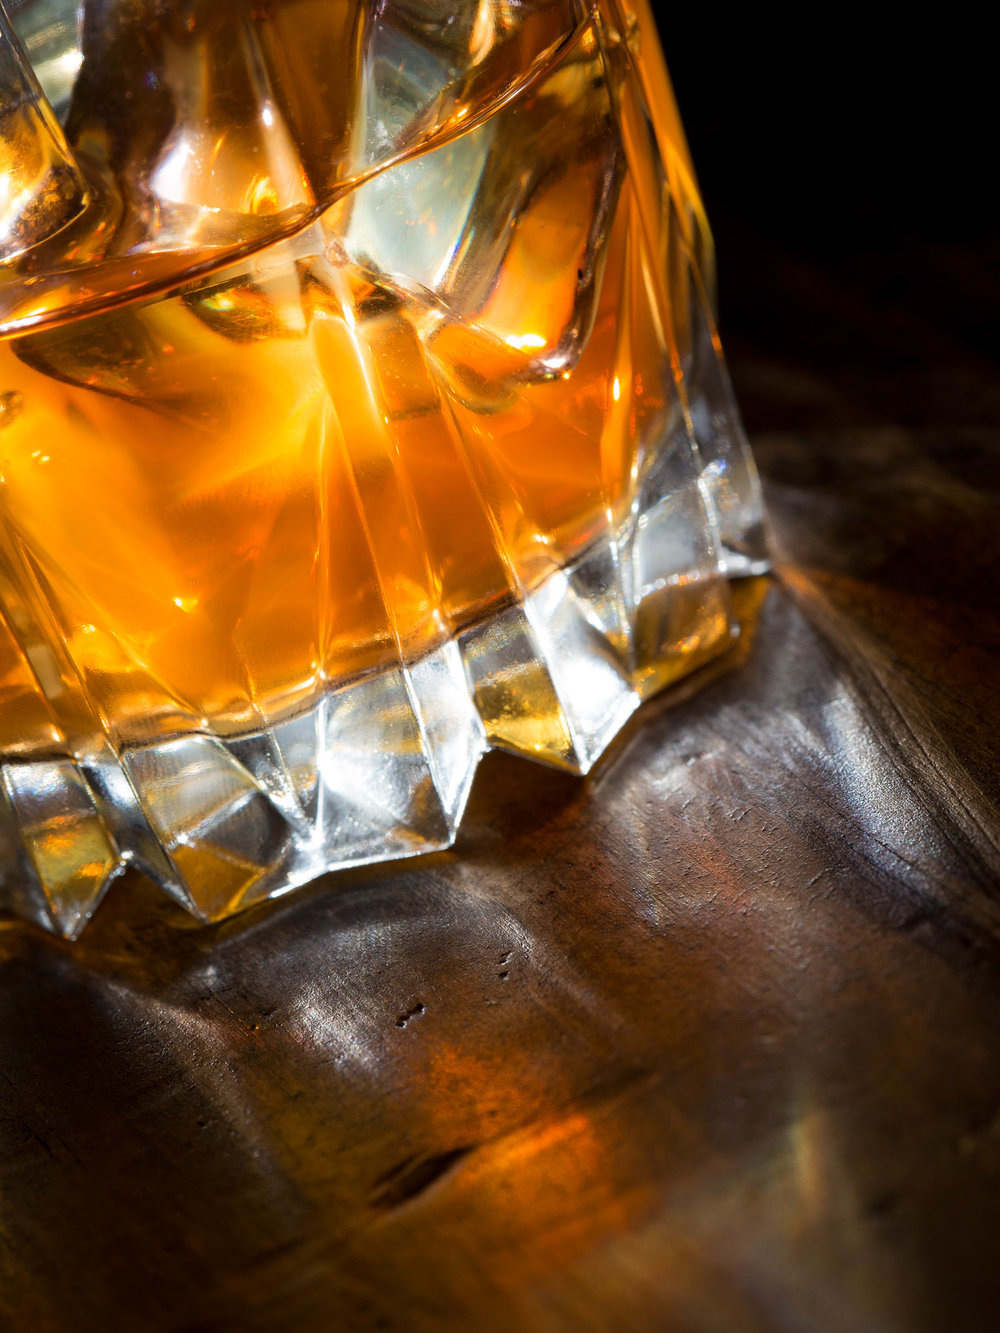 Close-up of whisky glass abstract compostion with light shining through glass